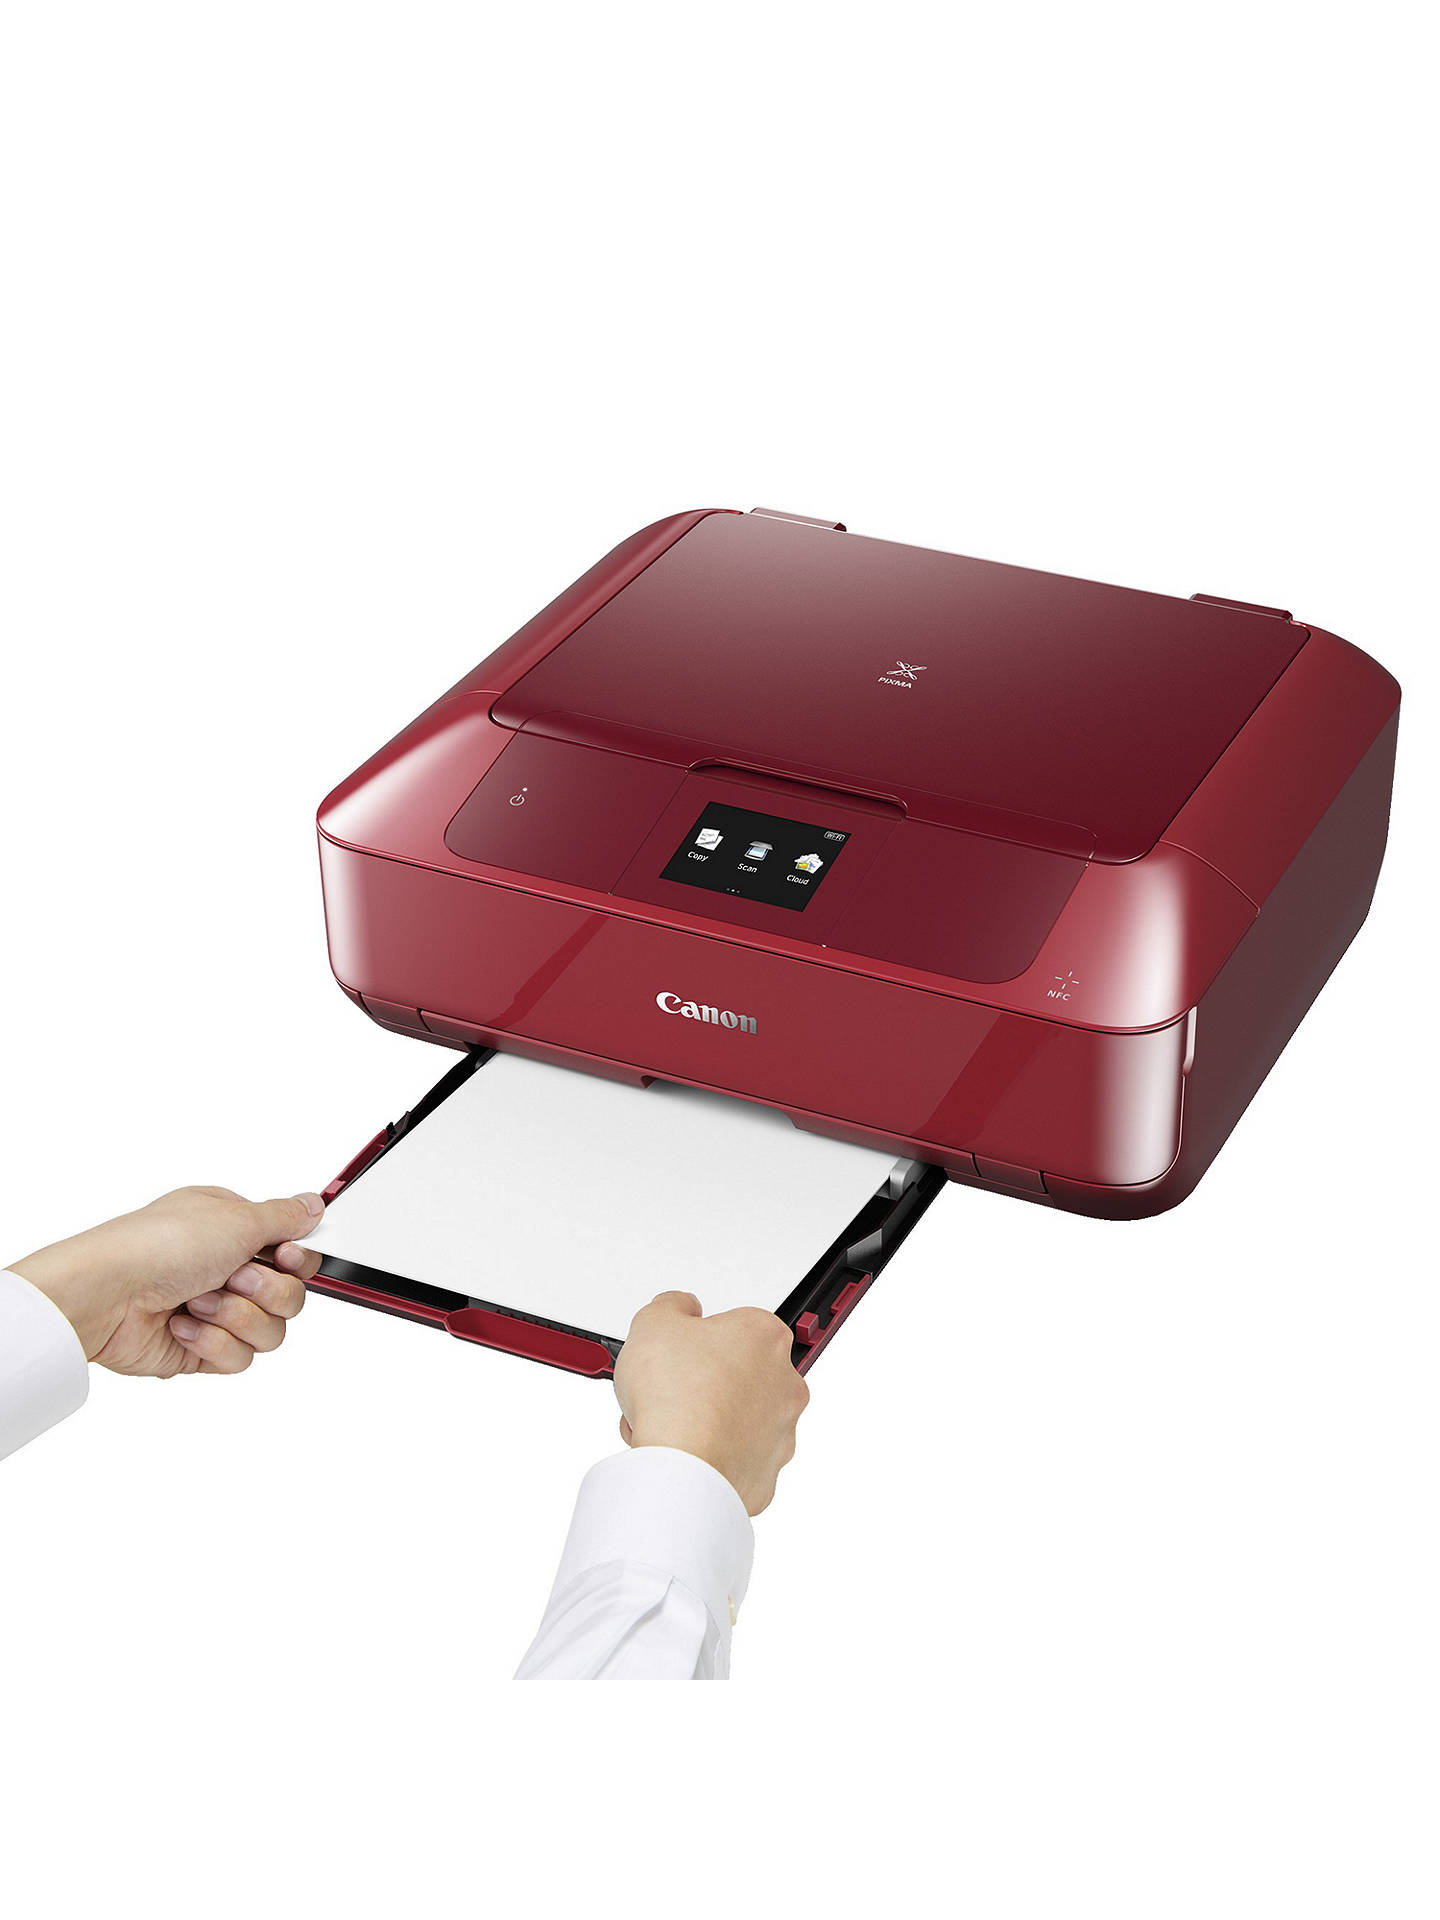 Canon PIXMA MG7752 All-In-One Wireless Wi-Fi NFC Printer with Colour